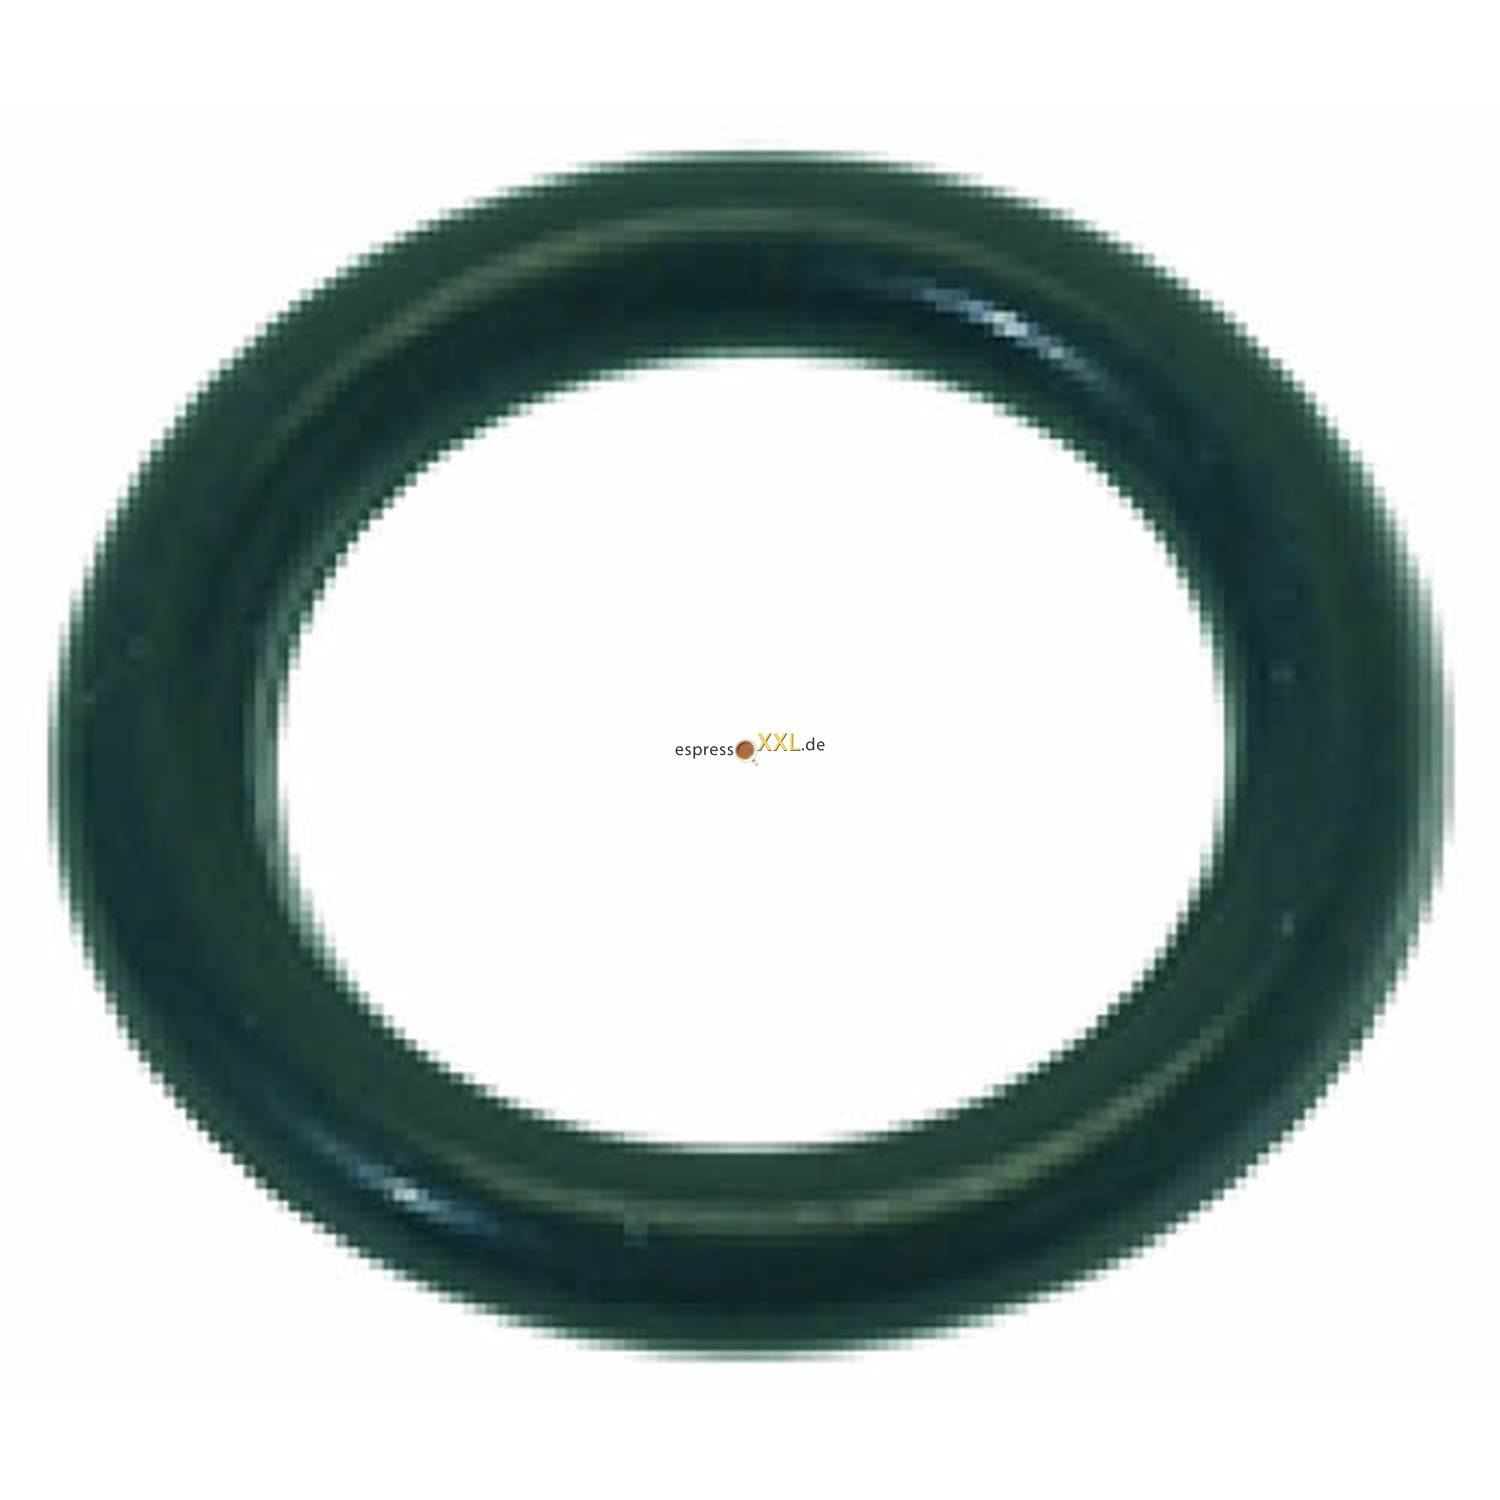 DICHTUNG O-RING | 02031 EPDM | ø 7,66x1,78 mm | CARIMALI - CASADIO - CIMBALI - FAEMA  *** MODELLE SIEHE TABELLE ***